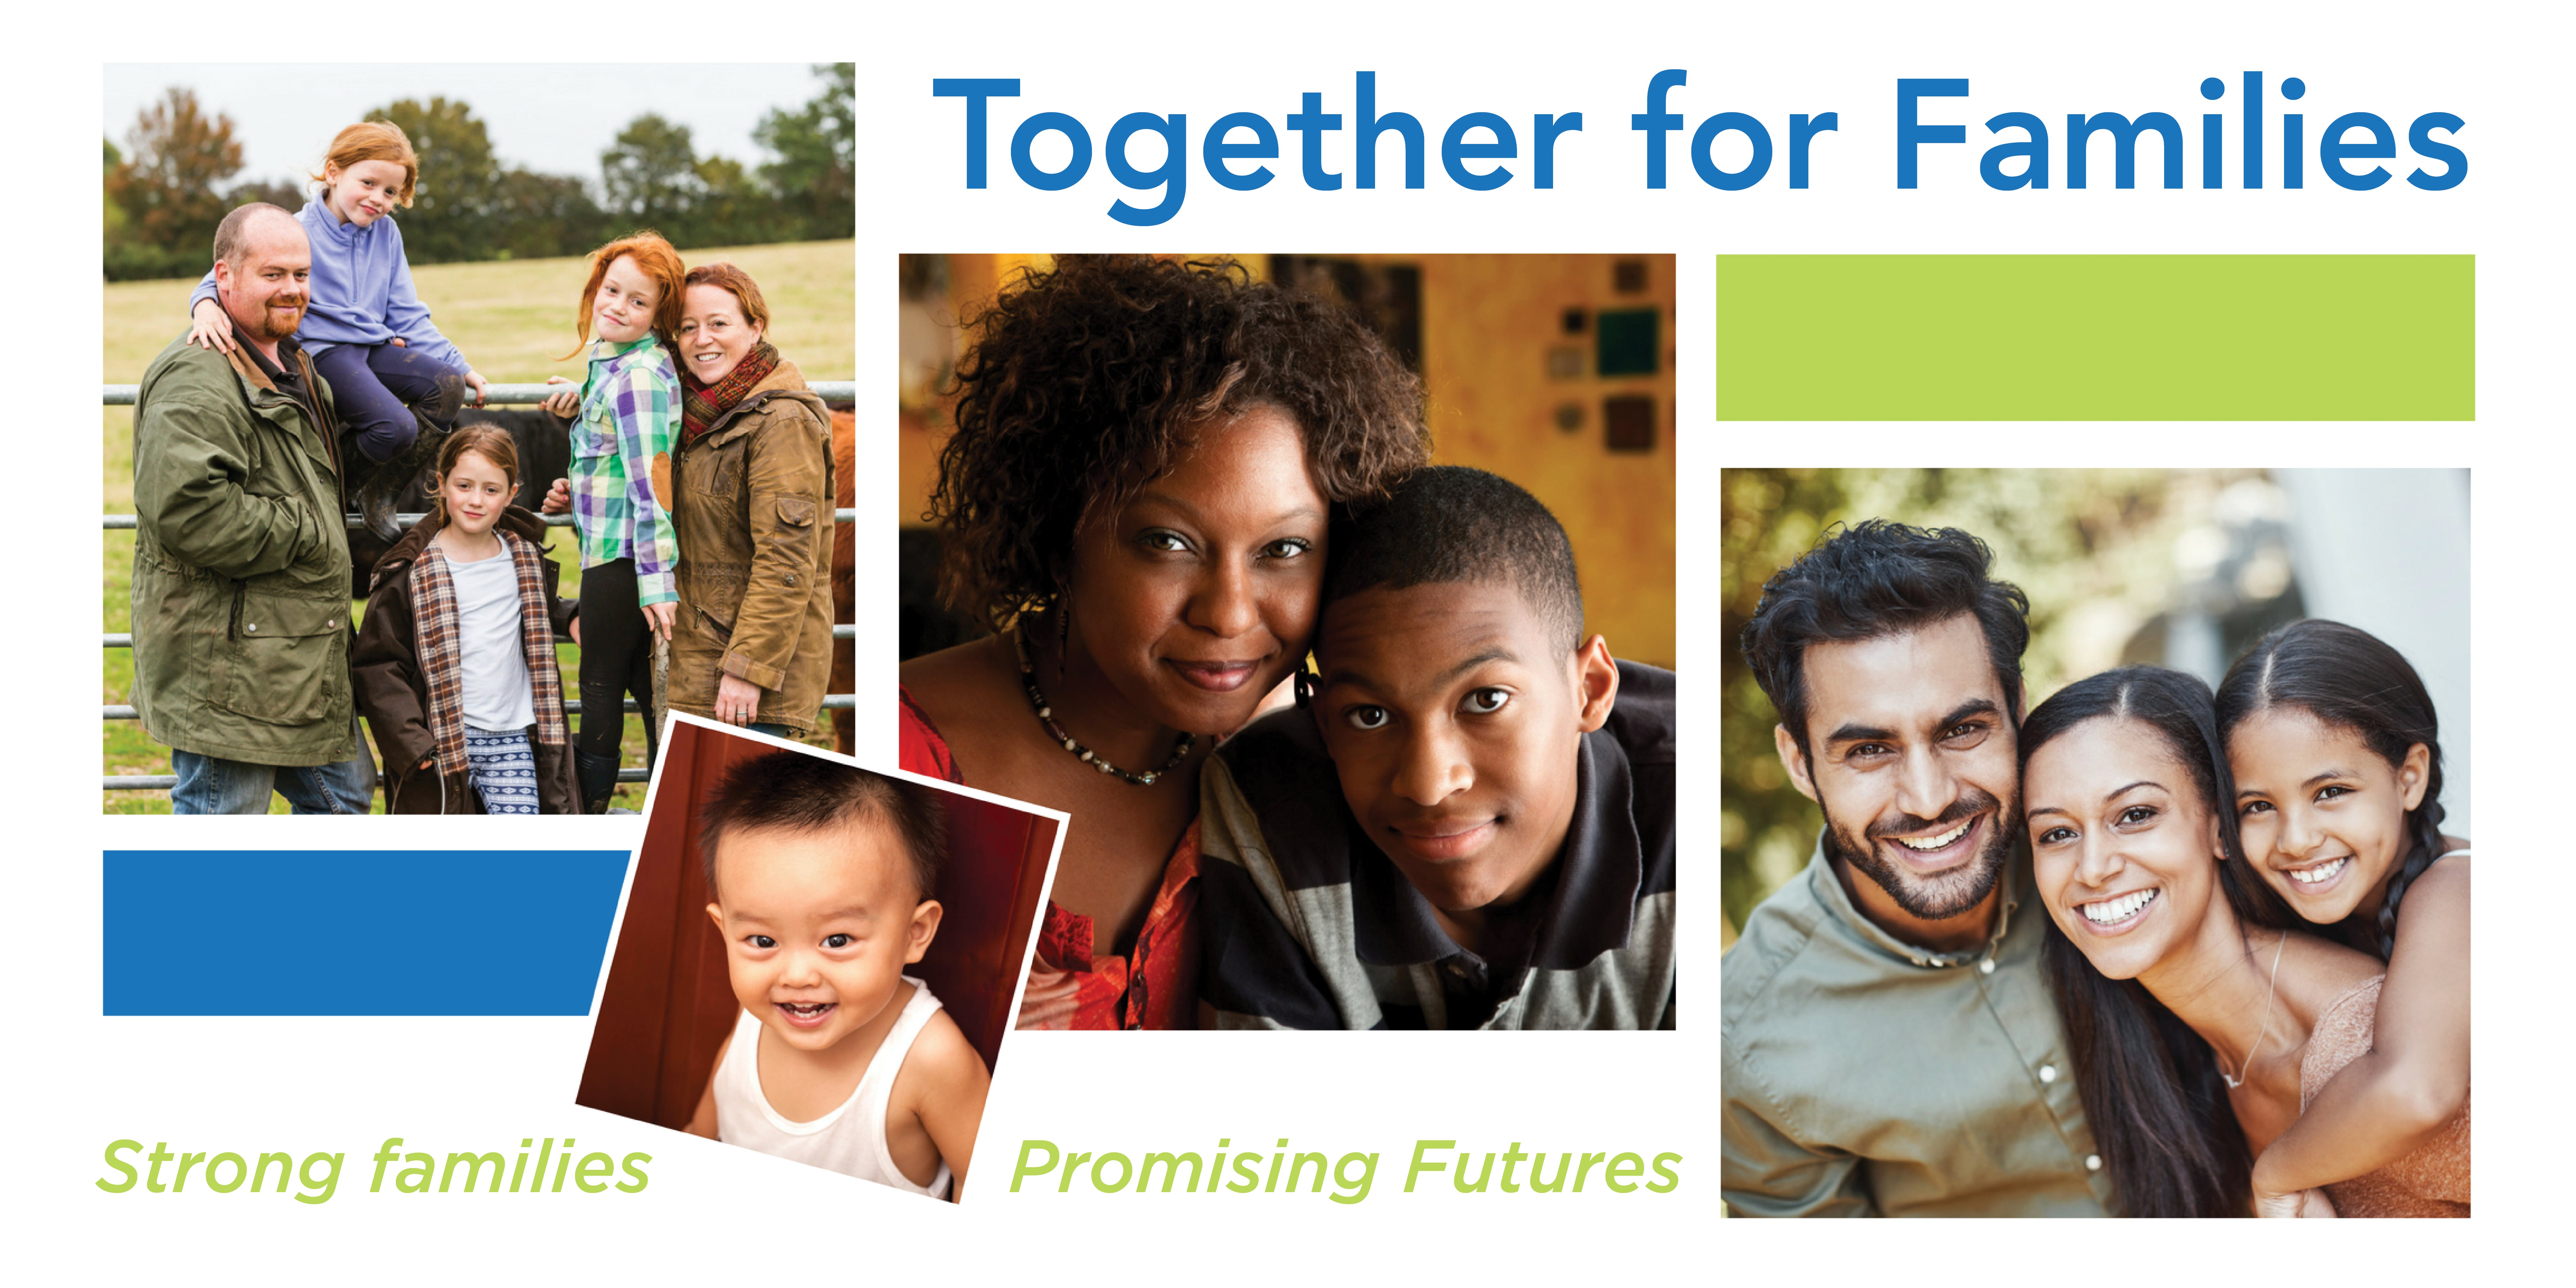 2018 Together for Families National Conference